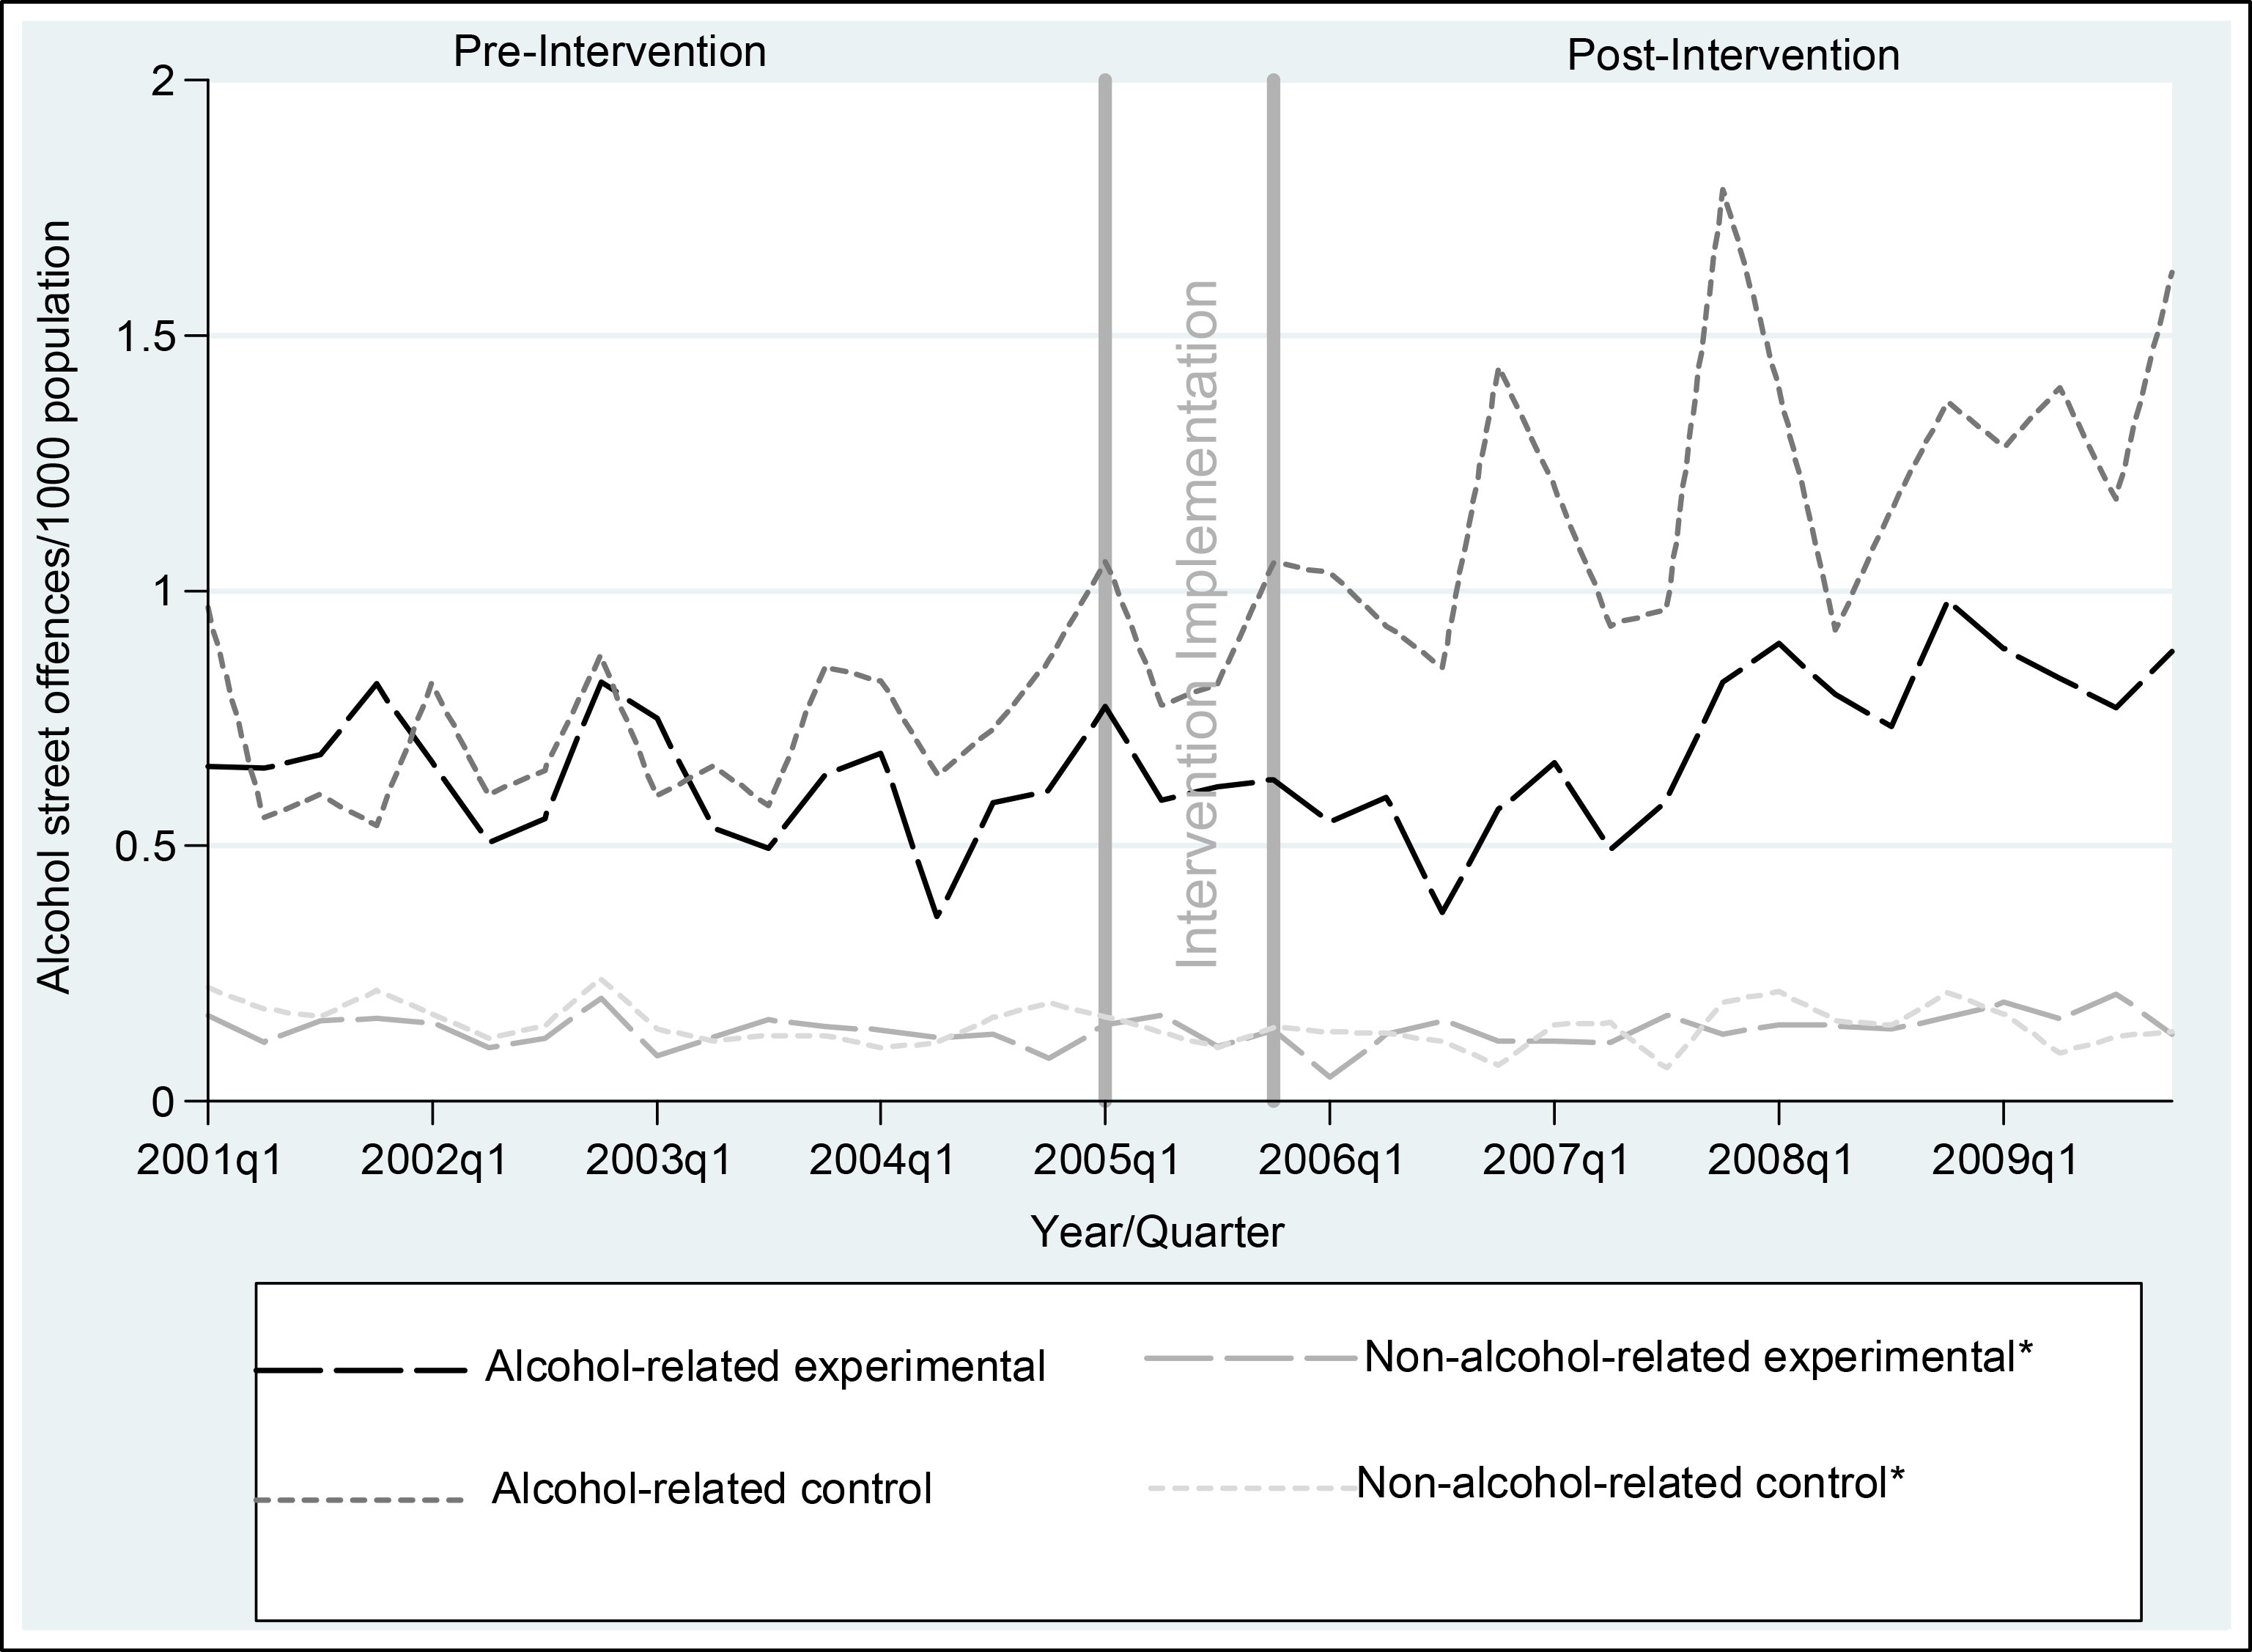 Rates of alcohol-related street offences per 1,000 population, per quarter, for experimental and control communities, 1 January 2001–31 December 2009.